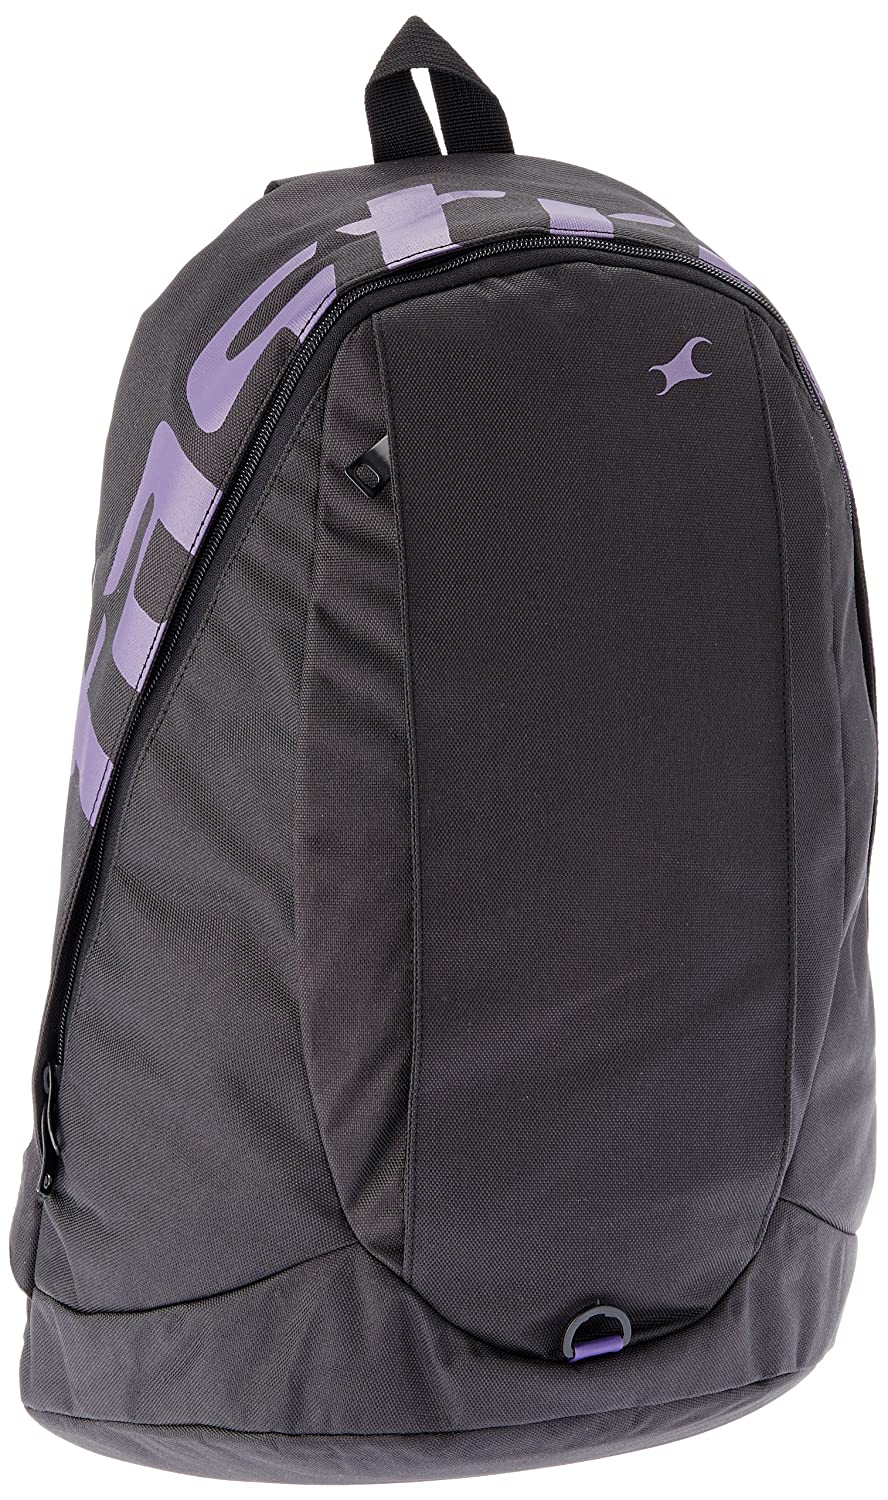 Fastrack Casual Backpack For Rs 895 Black At Amazon